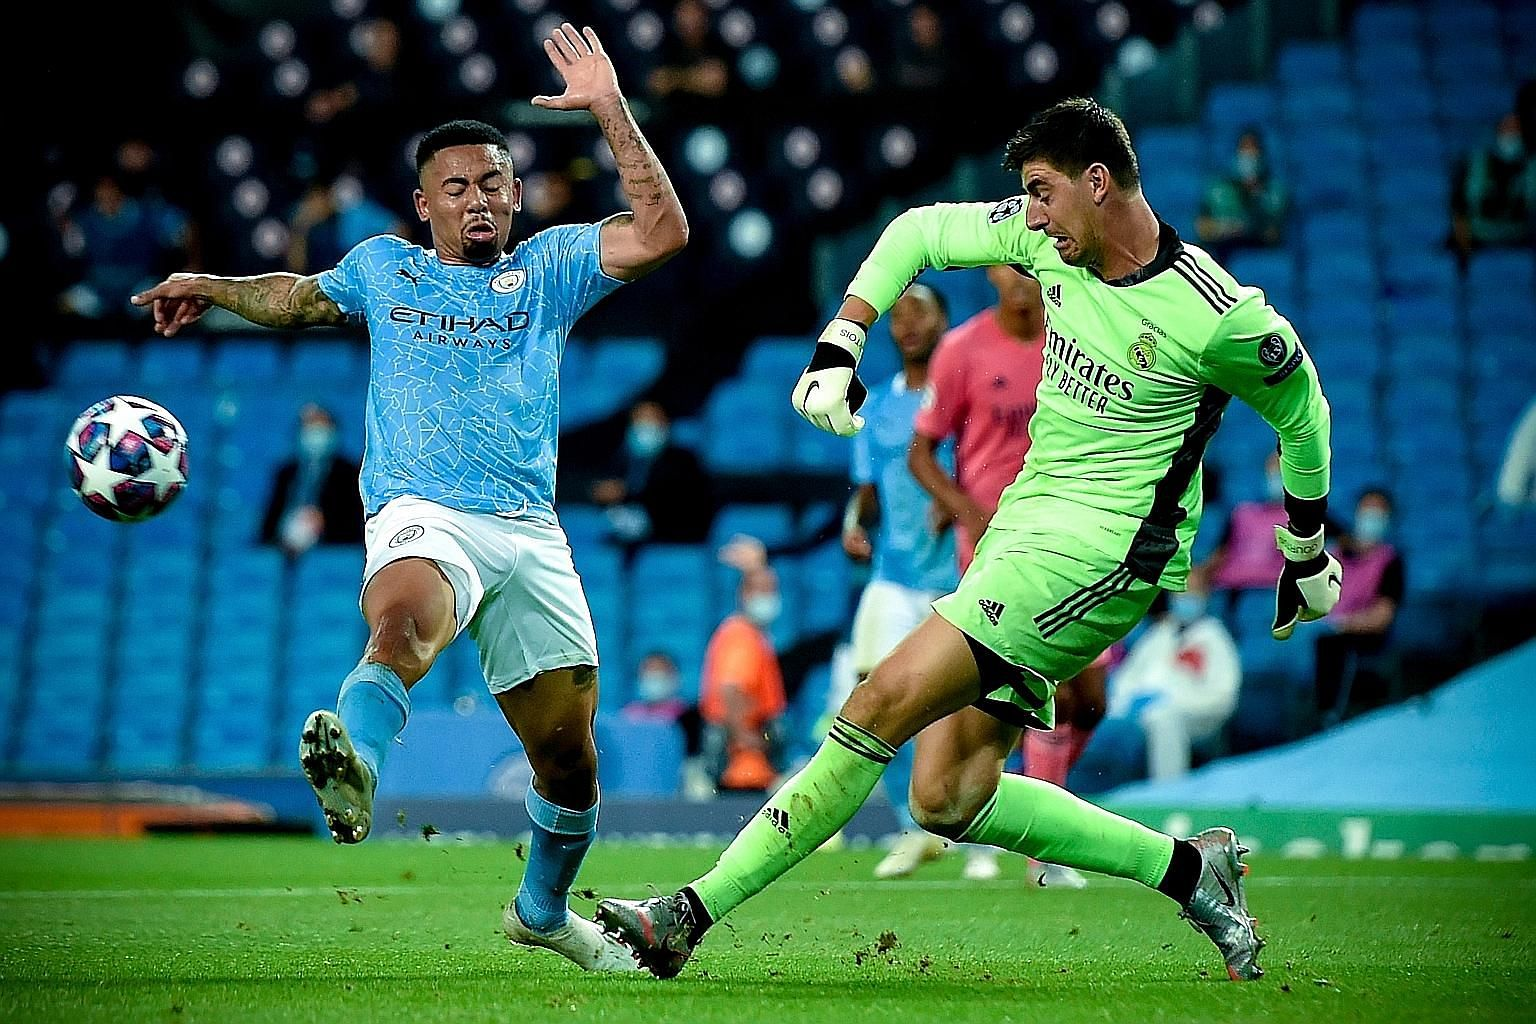 Real Madrid's goalkeeper Thibaut Courtois clearing the ball in time from Manchester City's Gabriel Jesus in their Champions League round-of-16 second leg at the Etihad Stadium on Friday. But Courtois could not stop two strikes by Jesus and Raheem Ste